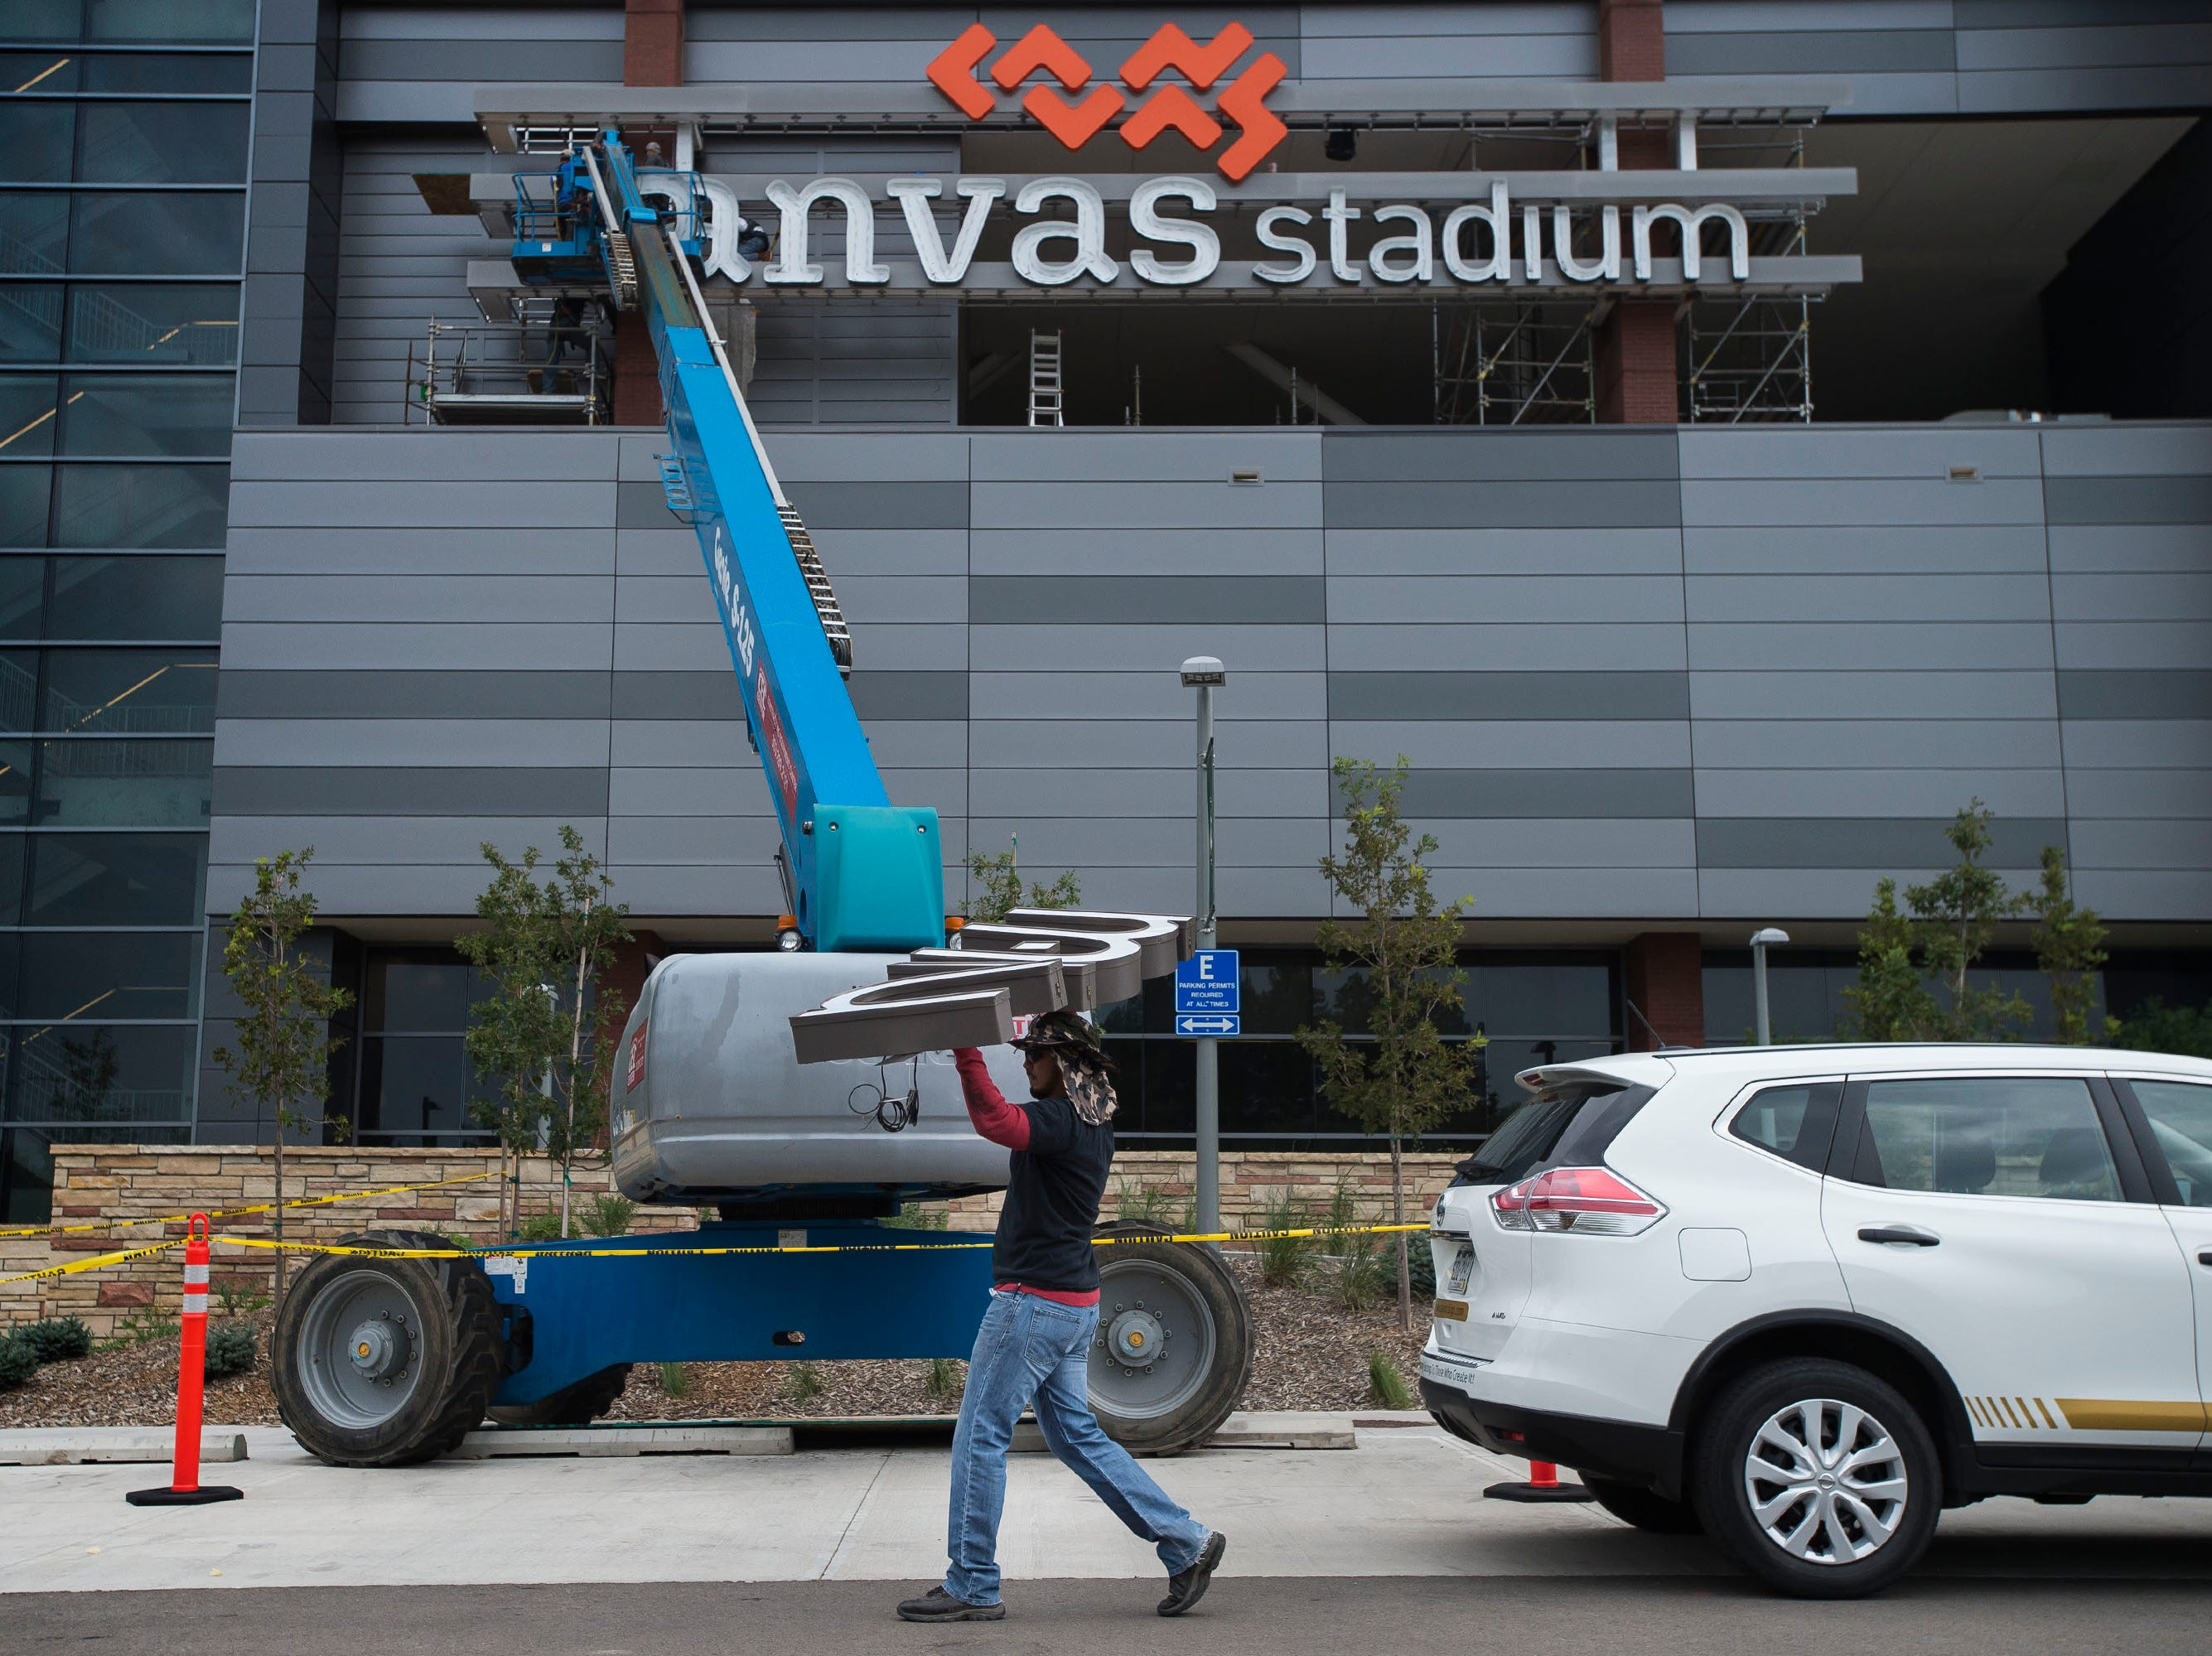 DaVinci Sign Systems, Inc. employee Christopher Gonzalez carries letters to the North face of the stadium while crews work to install the West-facing Canvas Stadium logo sign onto Colorado State University's football stadium on Tuesday, Aug. 21, 2018, in Fort Collins, Colo.